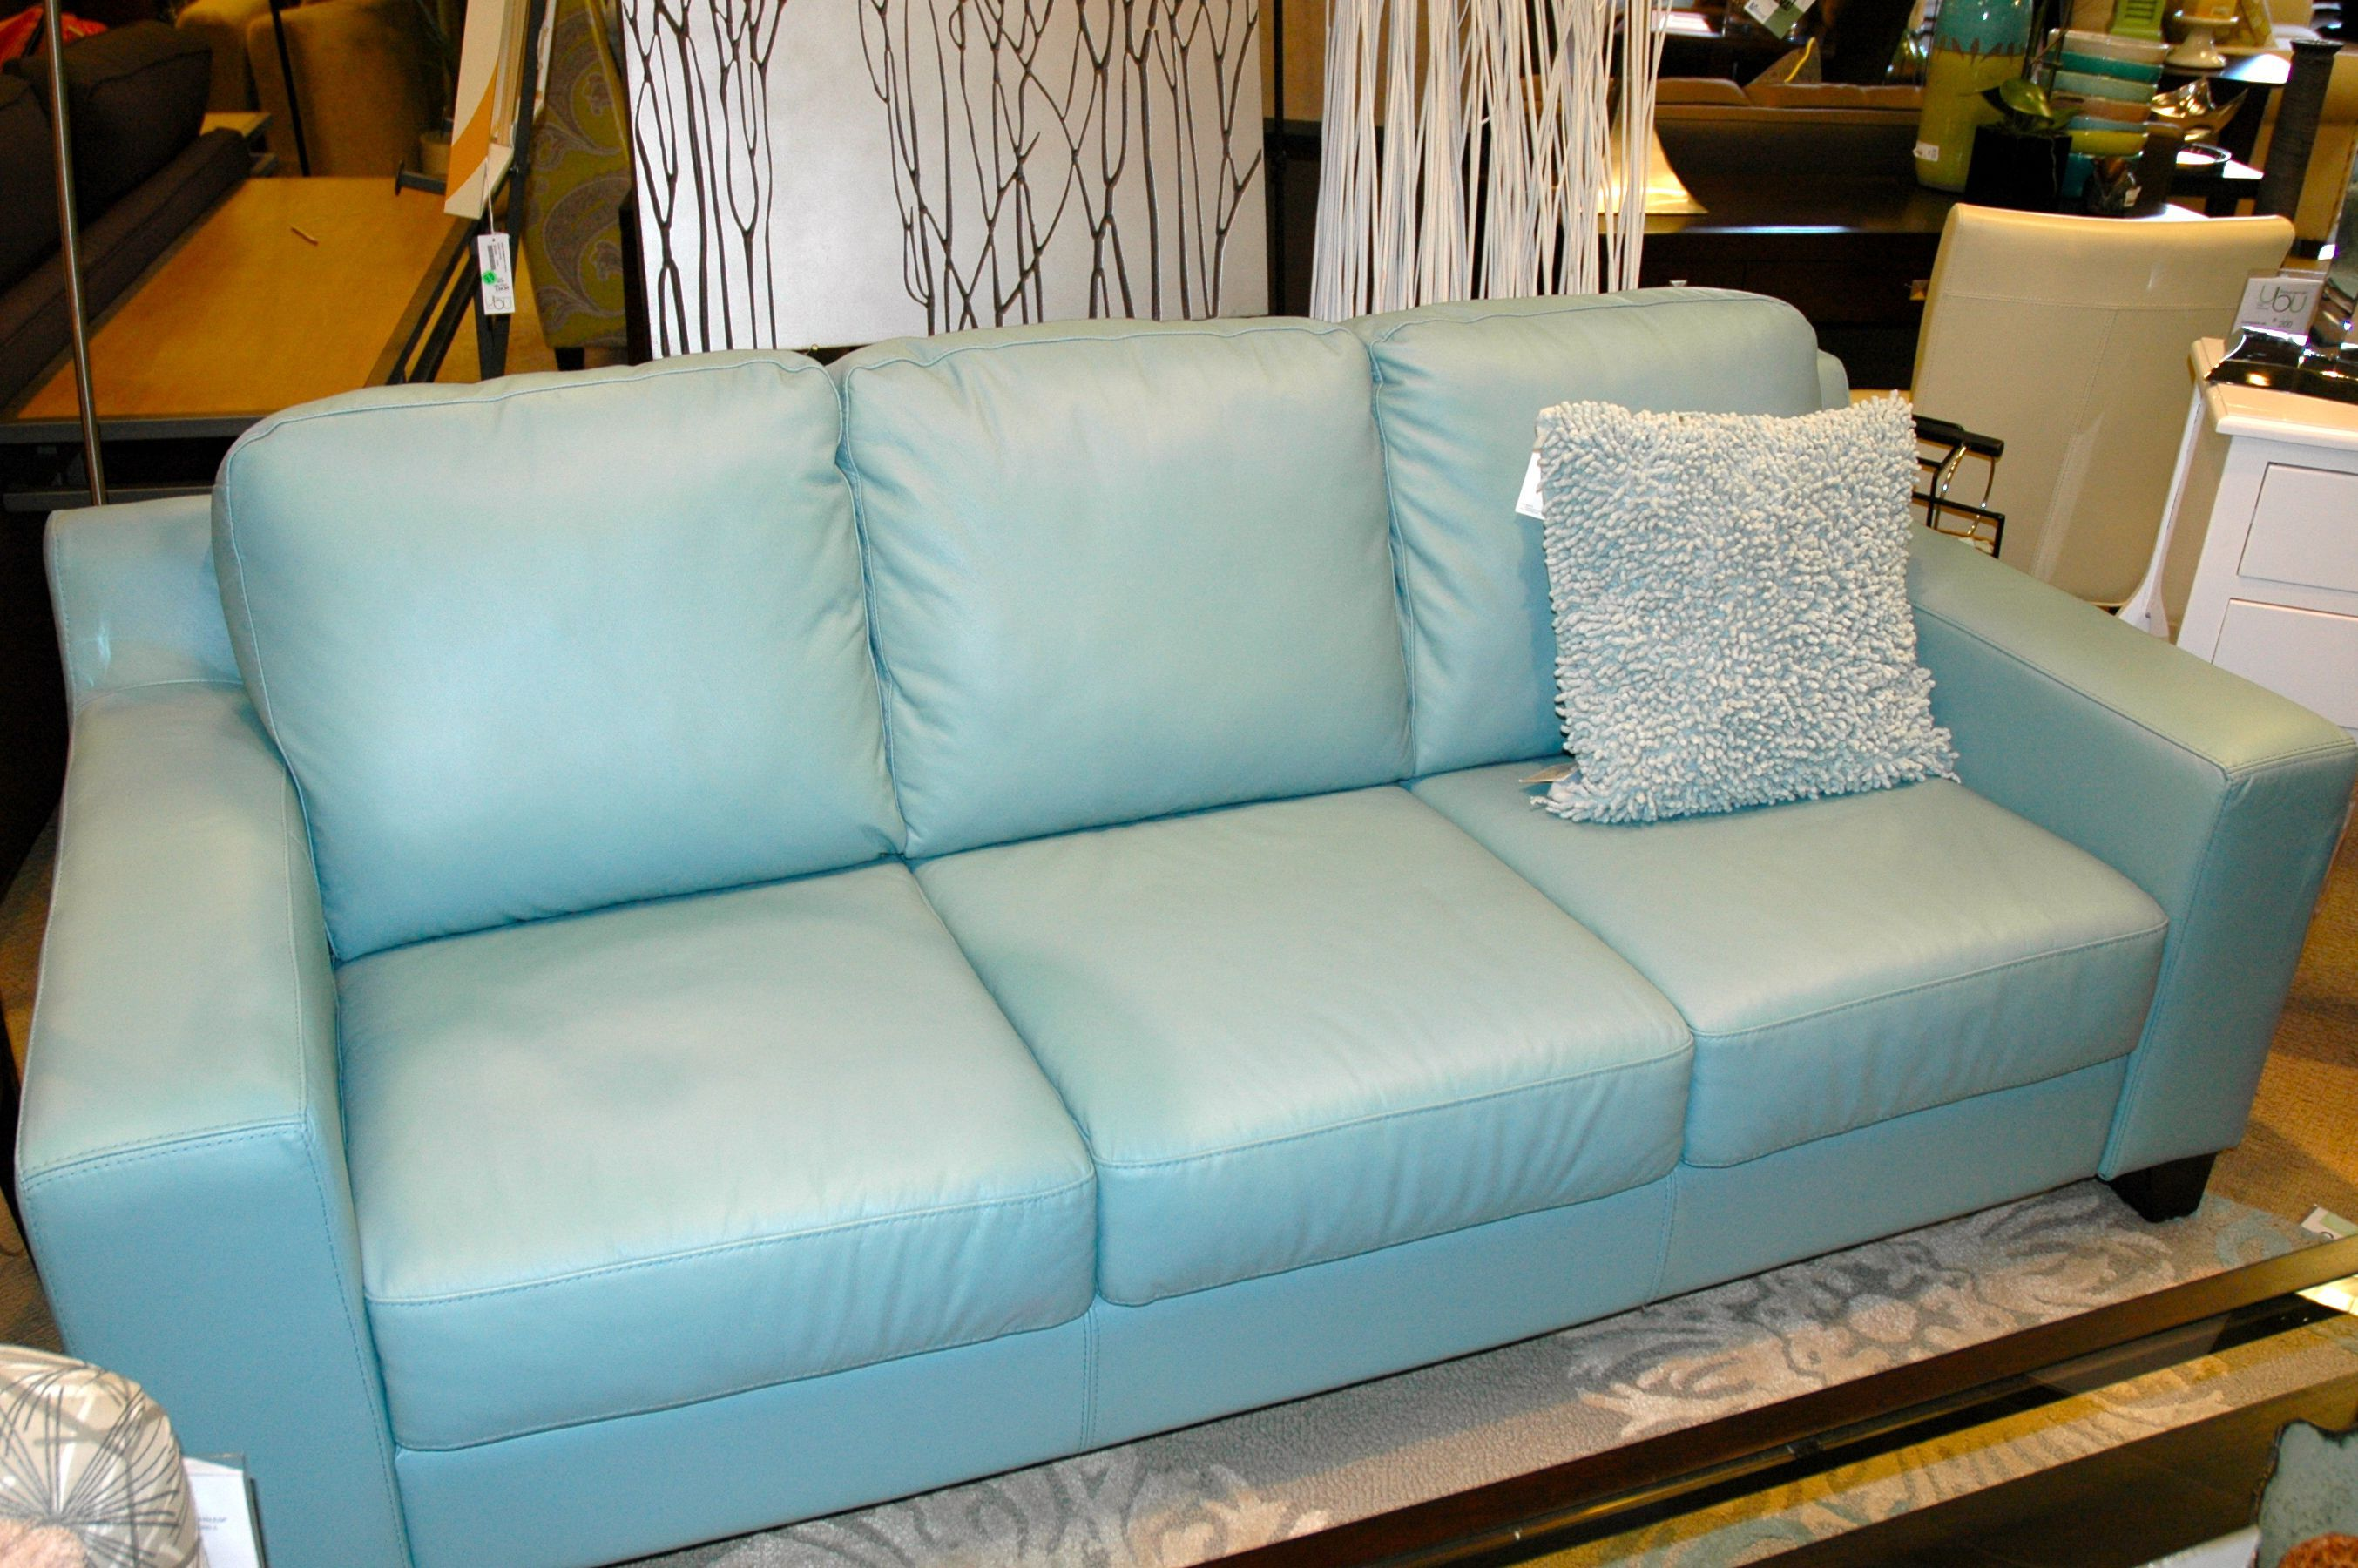 Light Blue Leather Sofa Blue Leather Sofa Blue Leather Couch